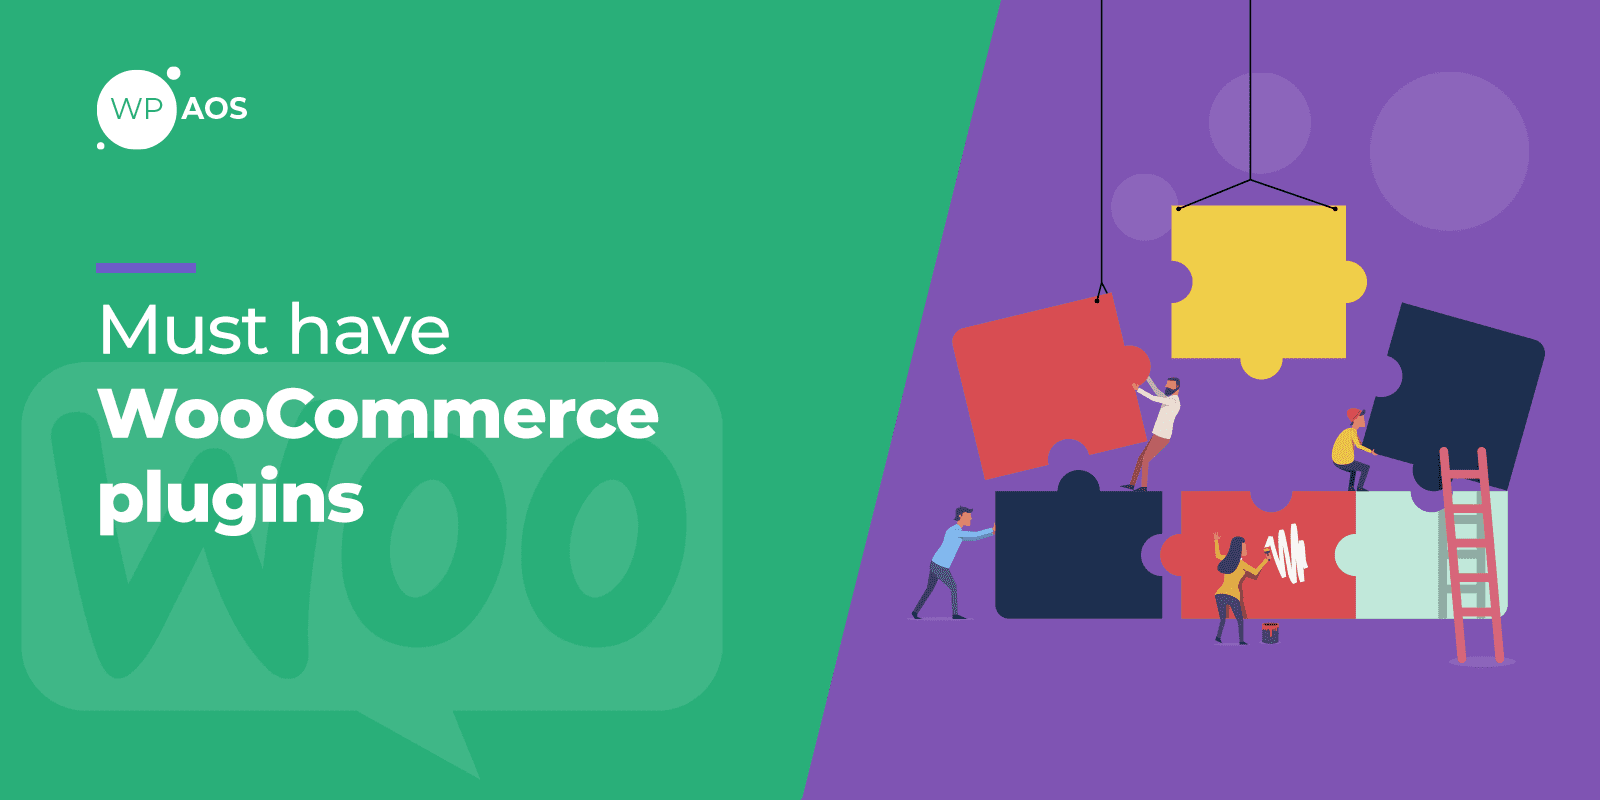 must have woocommerce plugins, woocommerce maintenance, wordpress support, wpaos